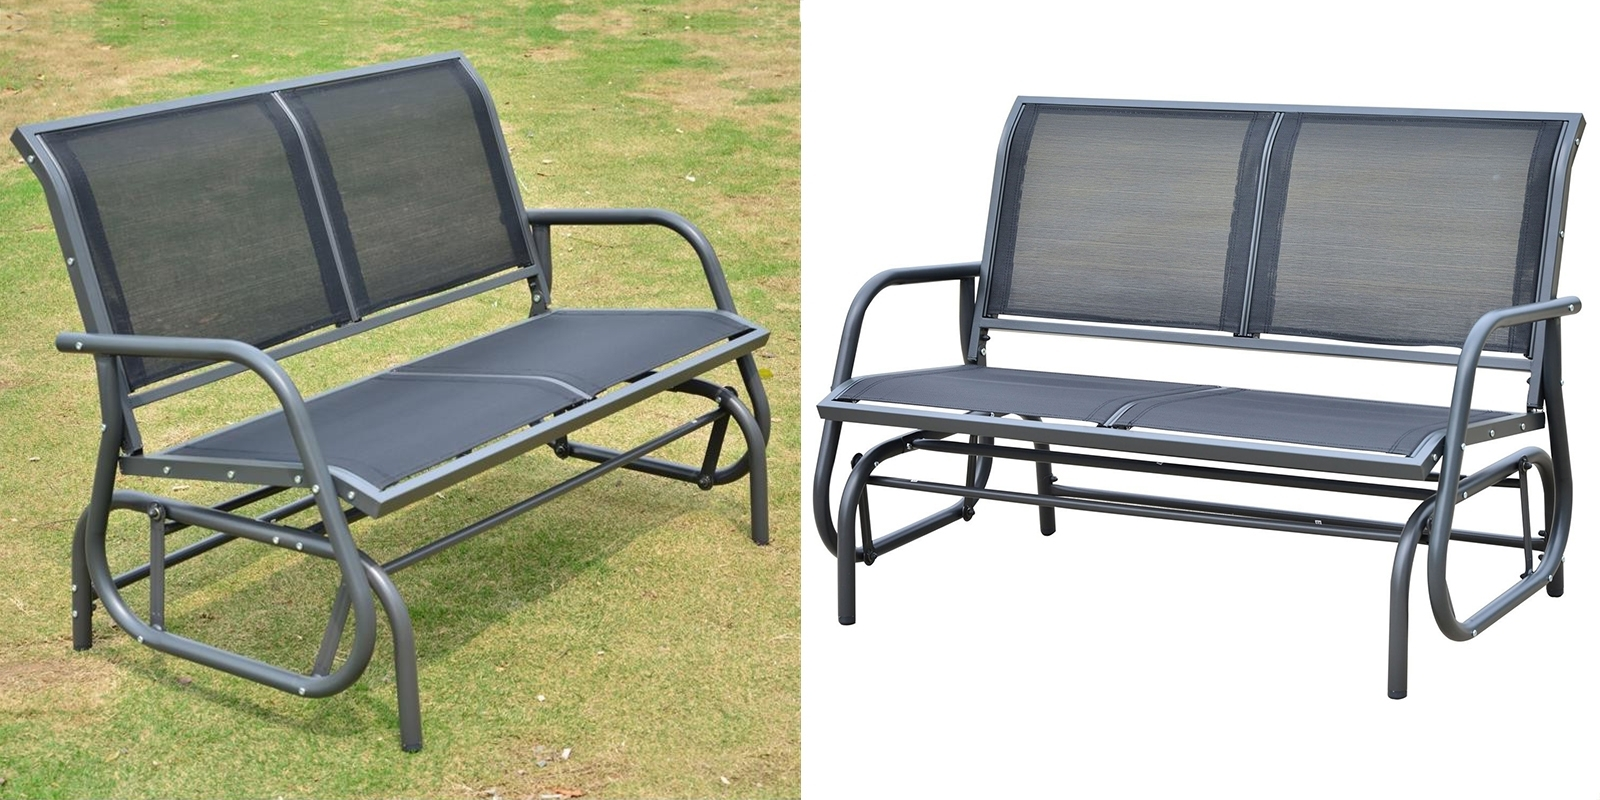 Patio Rocking Chairs And Gliders Regarding 2019 25 Best Patio Chairs To Buy Right Now (View 11 of 20)